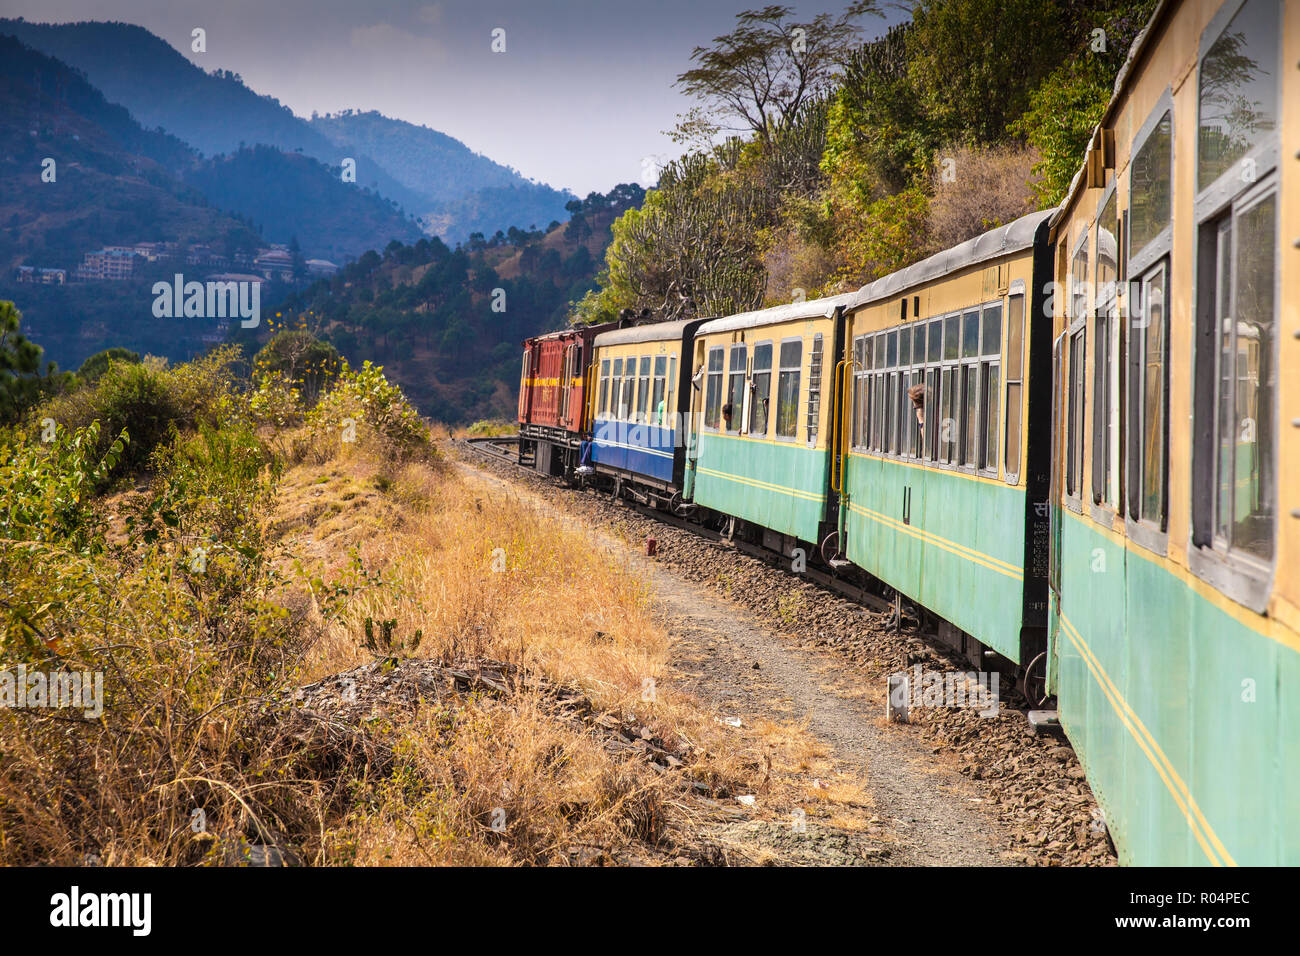 The Himalayan Queen toy train on the Kalka to Shimla Railway, UNESCO World Heritage Site, Northwest India, Asia Stock Photo